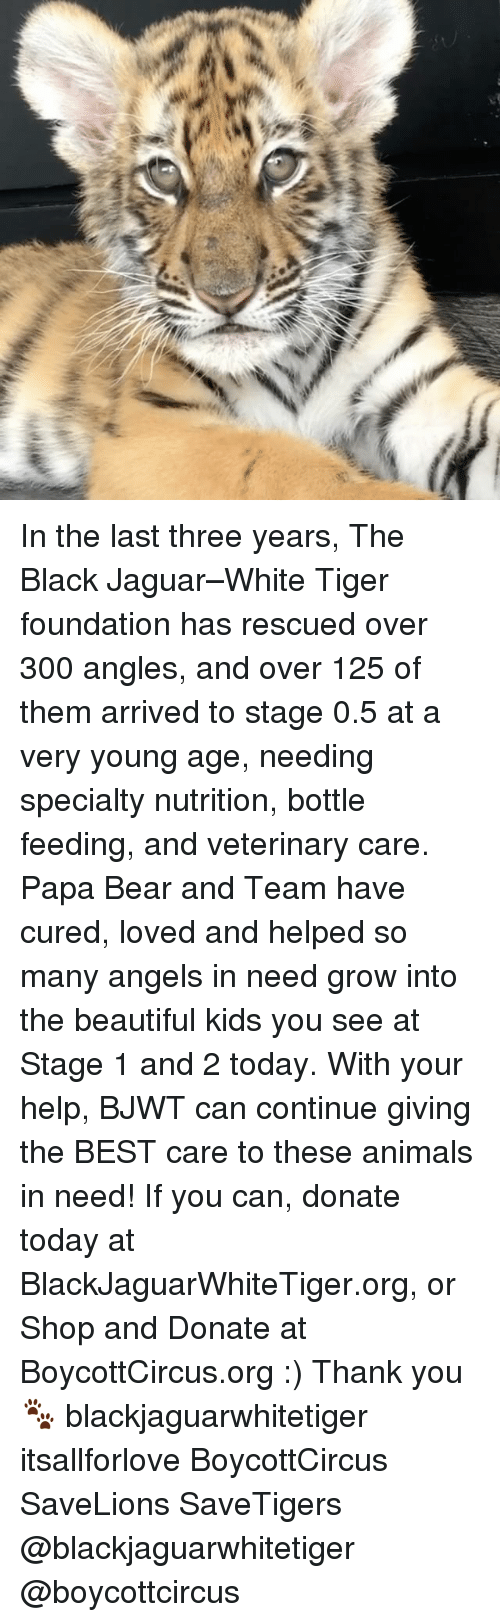 papa bear: In the last three years, The Black Jaguar–White Tiger foundation has rescued over 300 angles, and over 125 of them arrived to stage 0.5 at a very young age, needing specialty nutrition, bottle feeding, and veterinary care. Papa Bear and Team have cured, loved and helped so many angels in need grow into the beautiful kids you see at Stage 1 and 2 today. With your help, BJWT can continue giving the BEST care to these animals in need! If you can, donate today at BlackJaguarWhiteTiger.org, or Shop and Donate at BoycottCircus.org :) Thank you🐾 blackjaguarwhitetiger itsallforlove BoycottCircus SaveLions SaveTigers @blackjaguarwhitetiger @boycottcircus